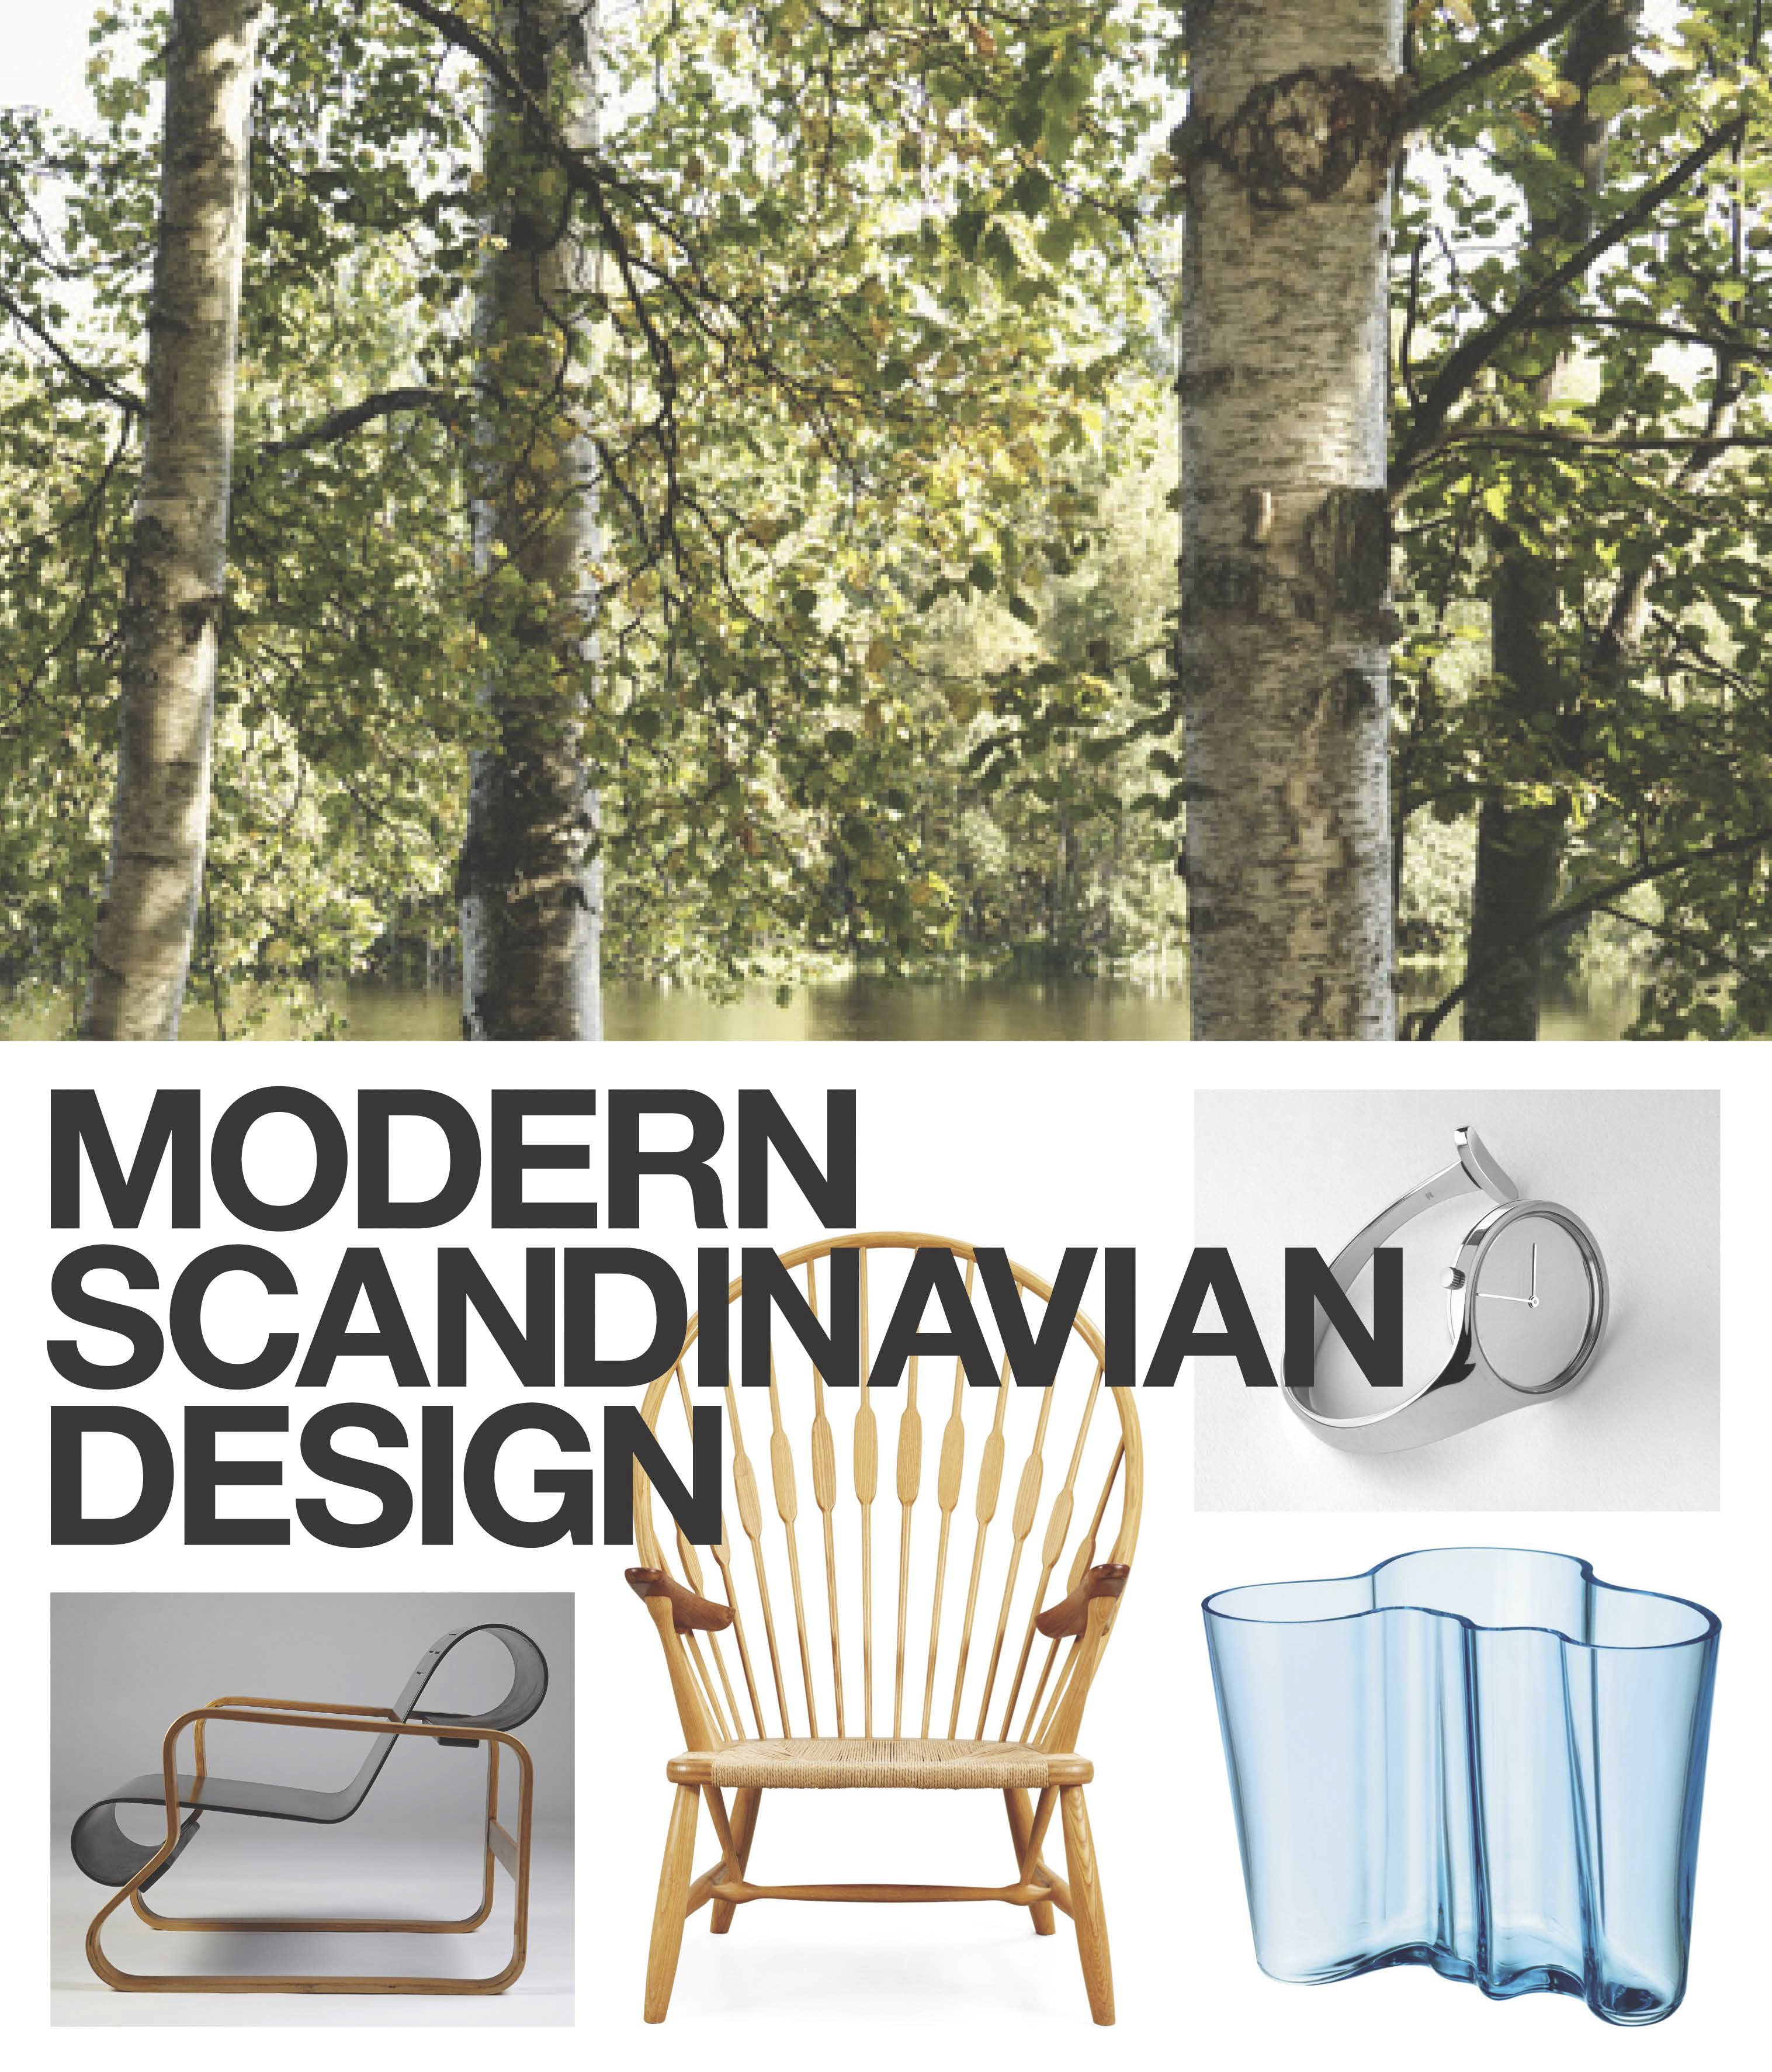 Modern Scandinavian Design Is The Ultimate Coffee Table